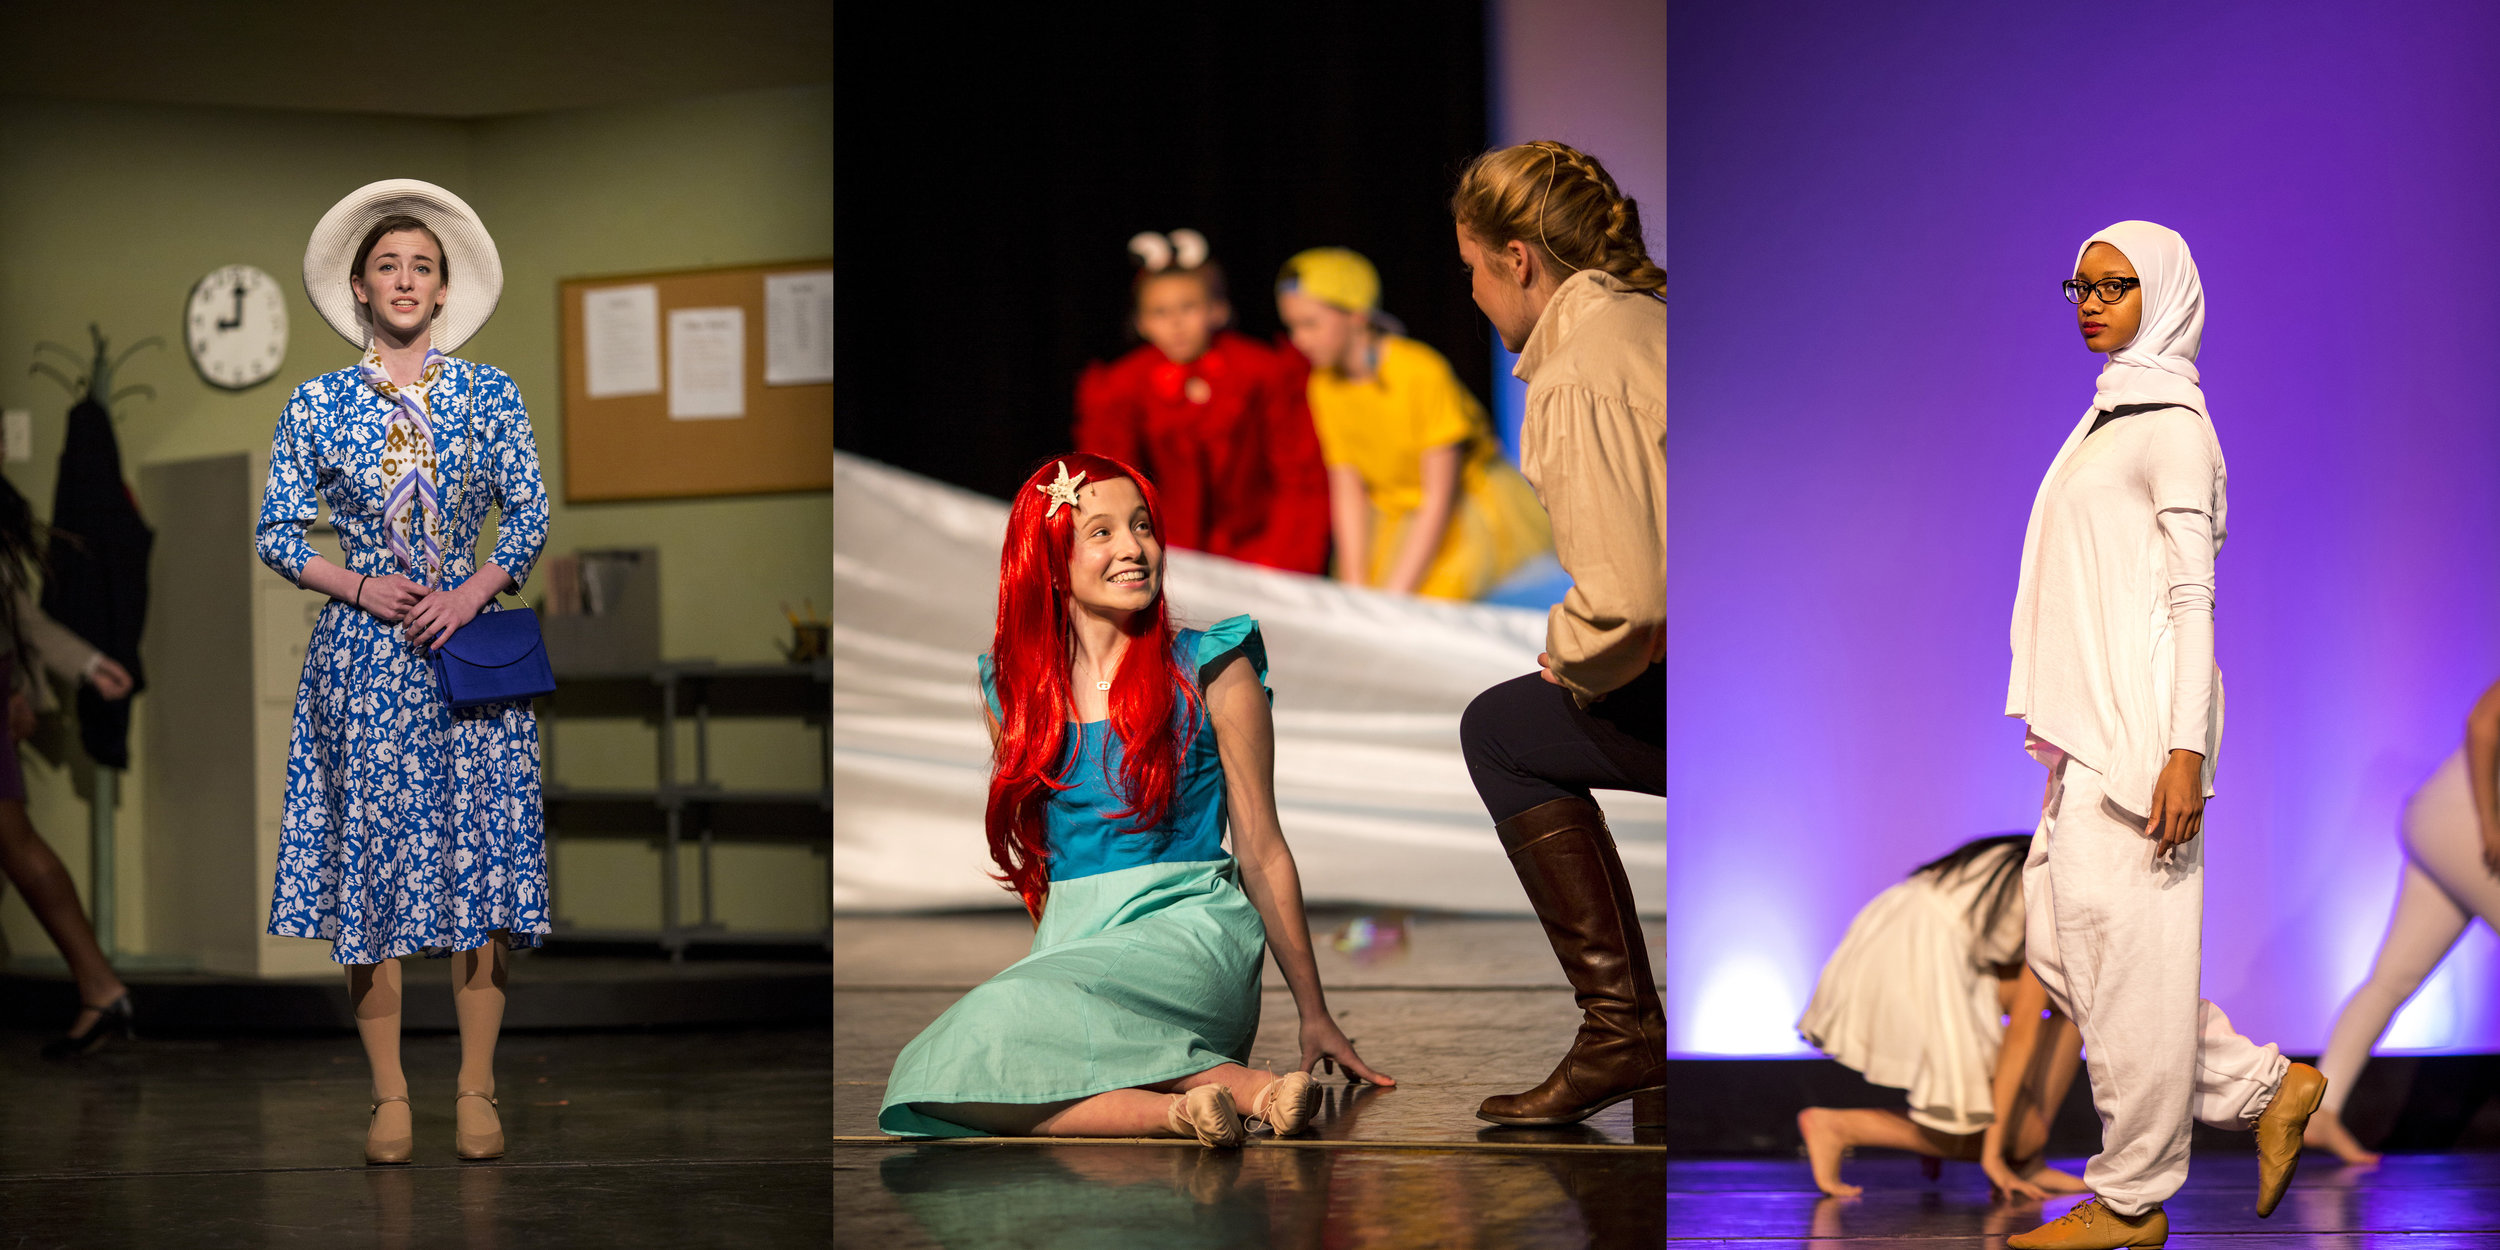 The Performing Arts at The Agnes Irwin School -